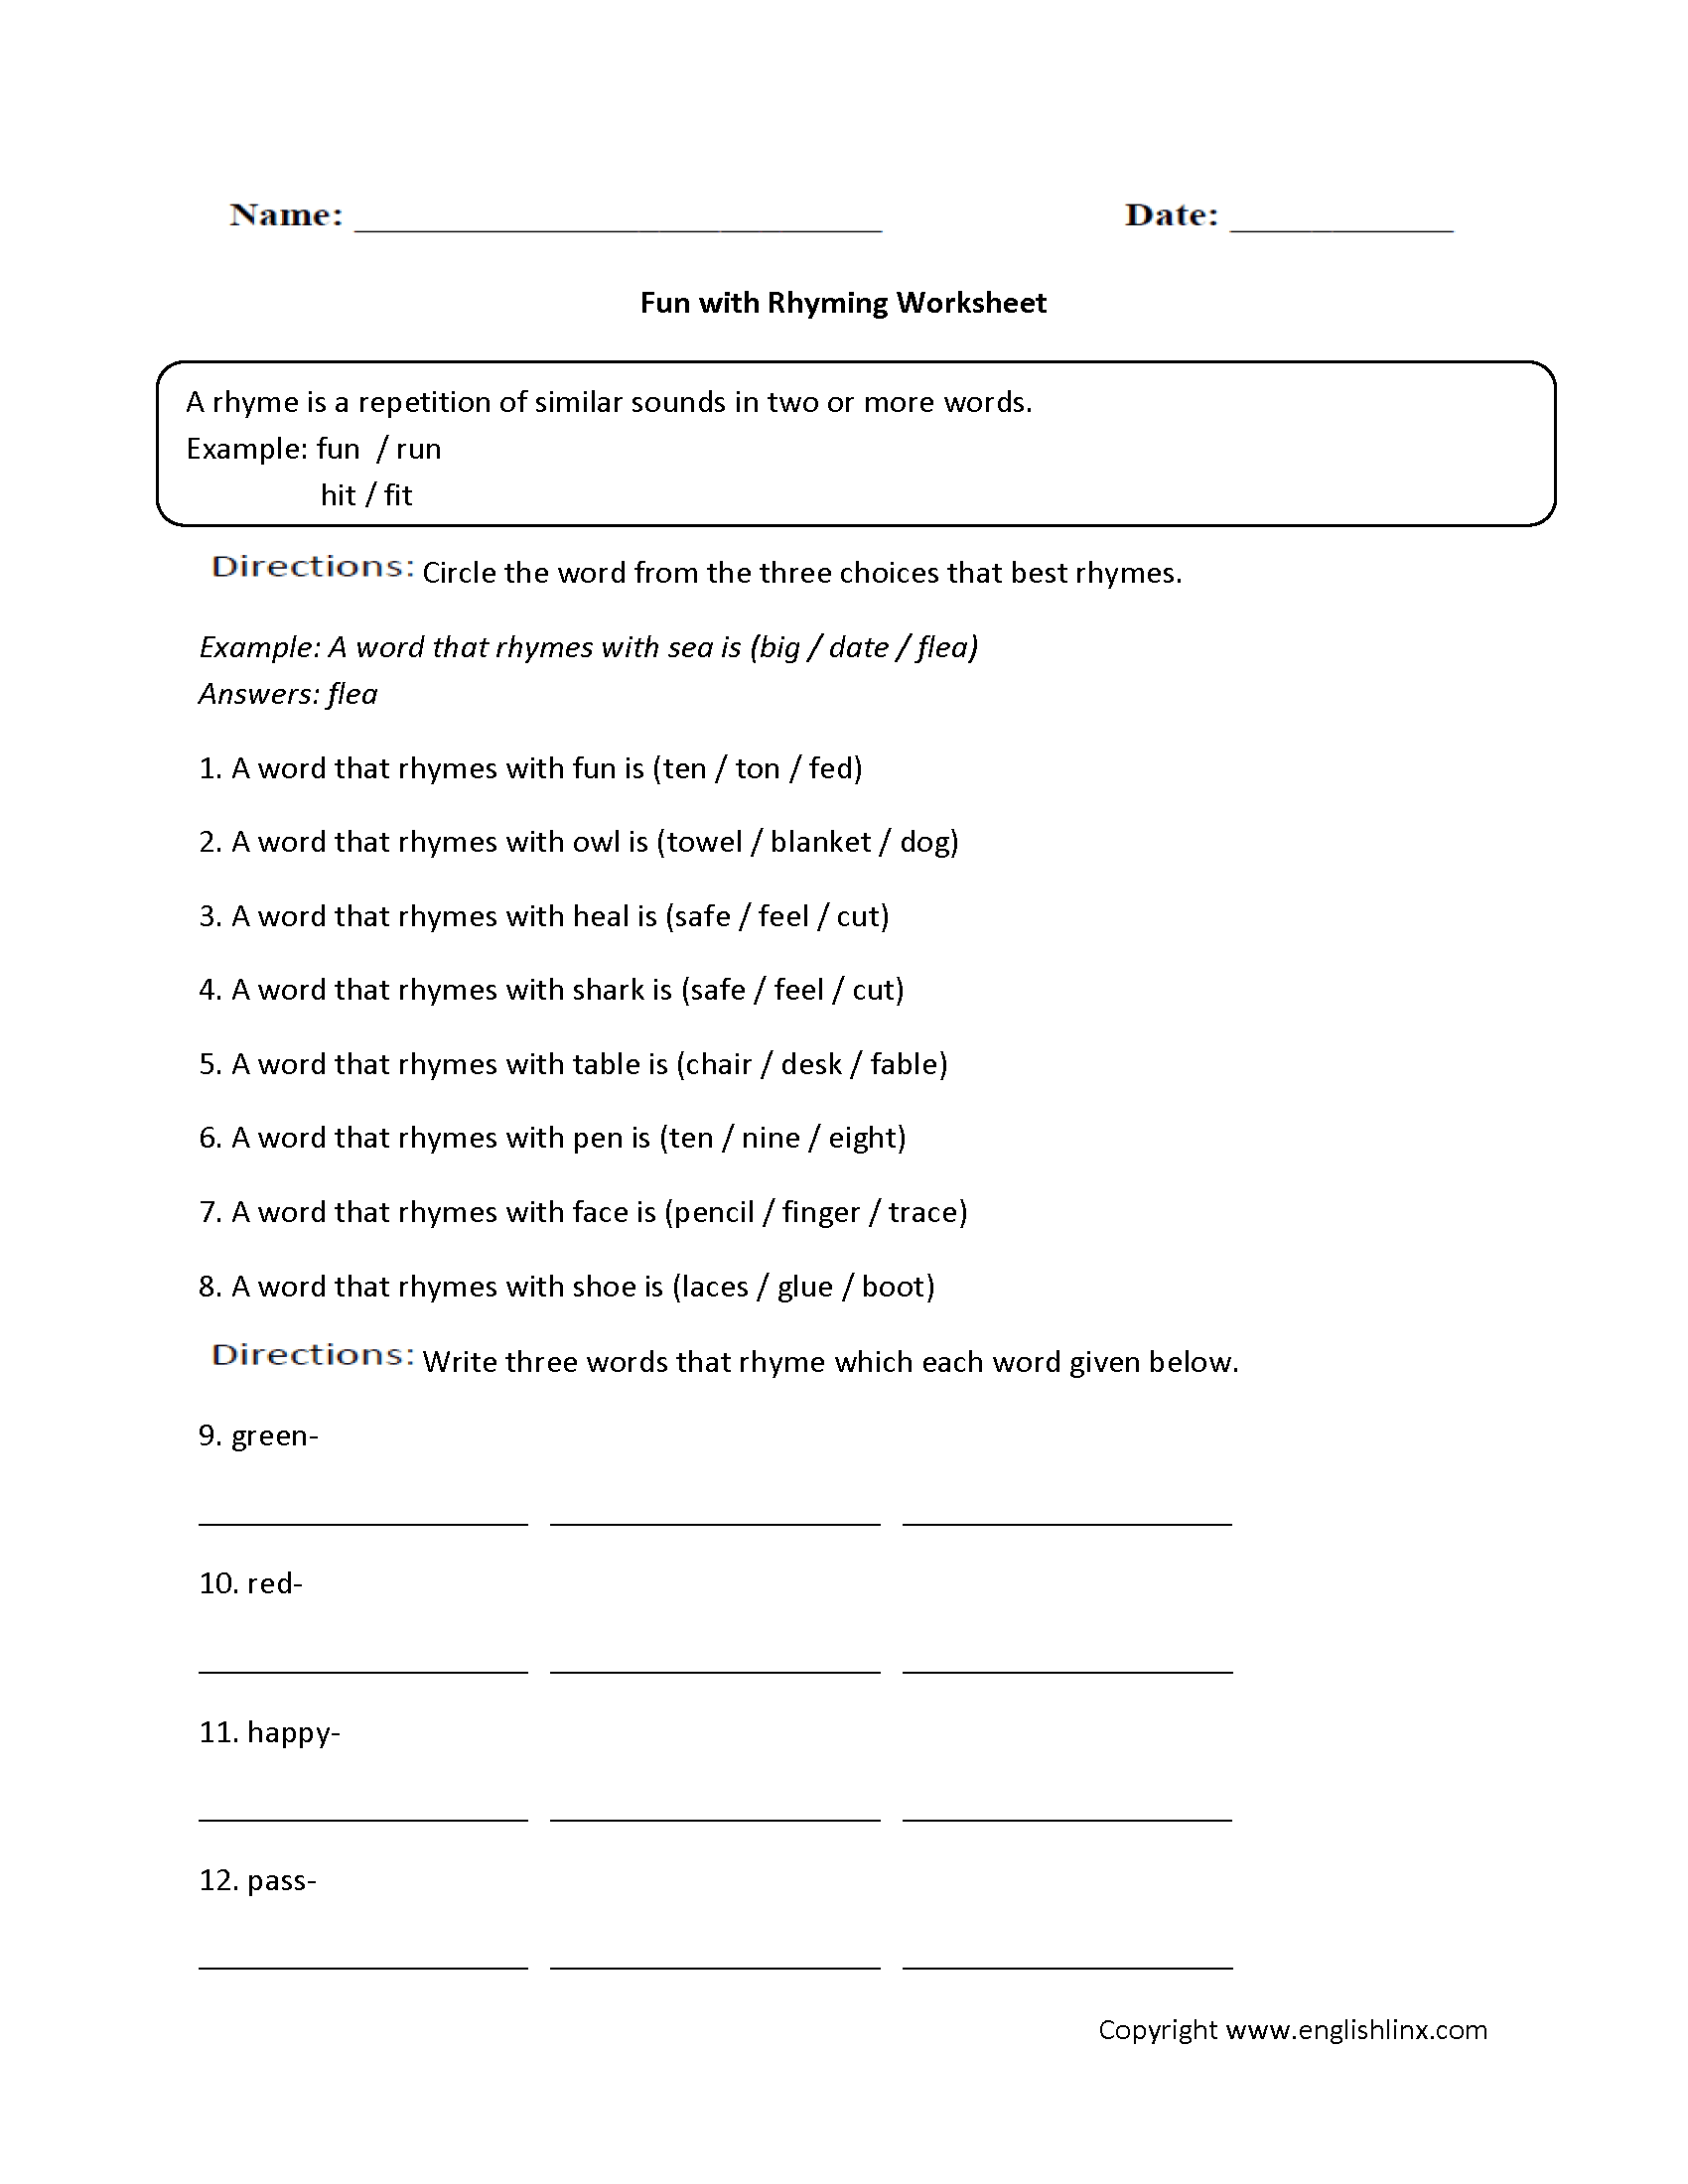 Worksheet Rhymes Worksheet englishlinx com rhyming worksheets grades 9 12 worksheets